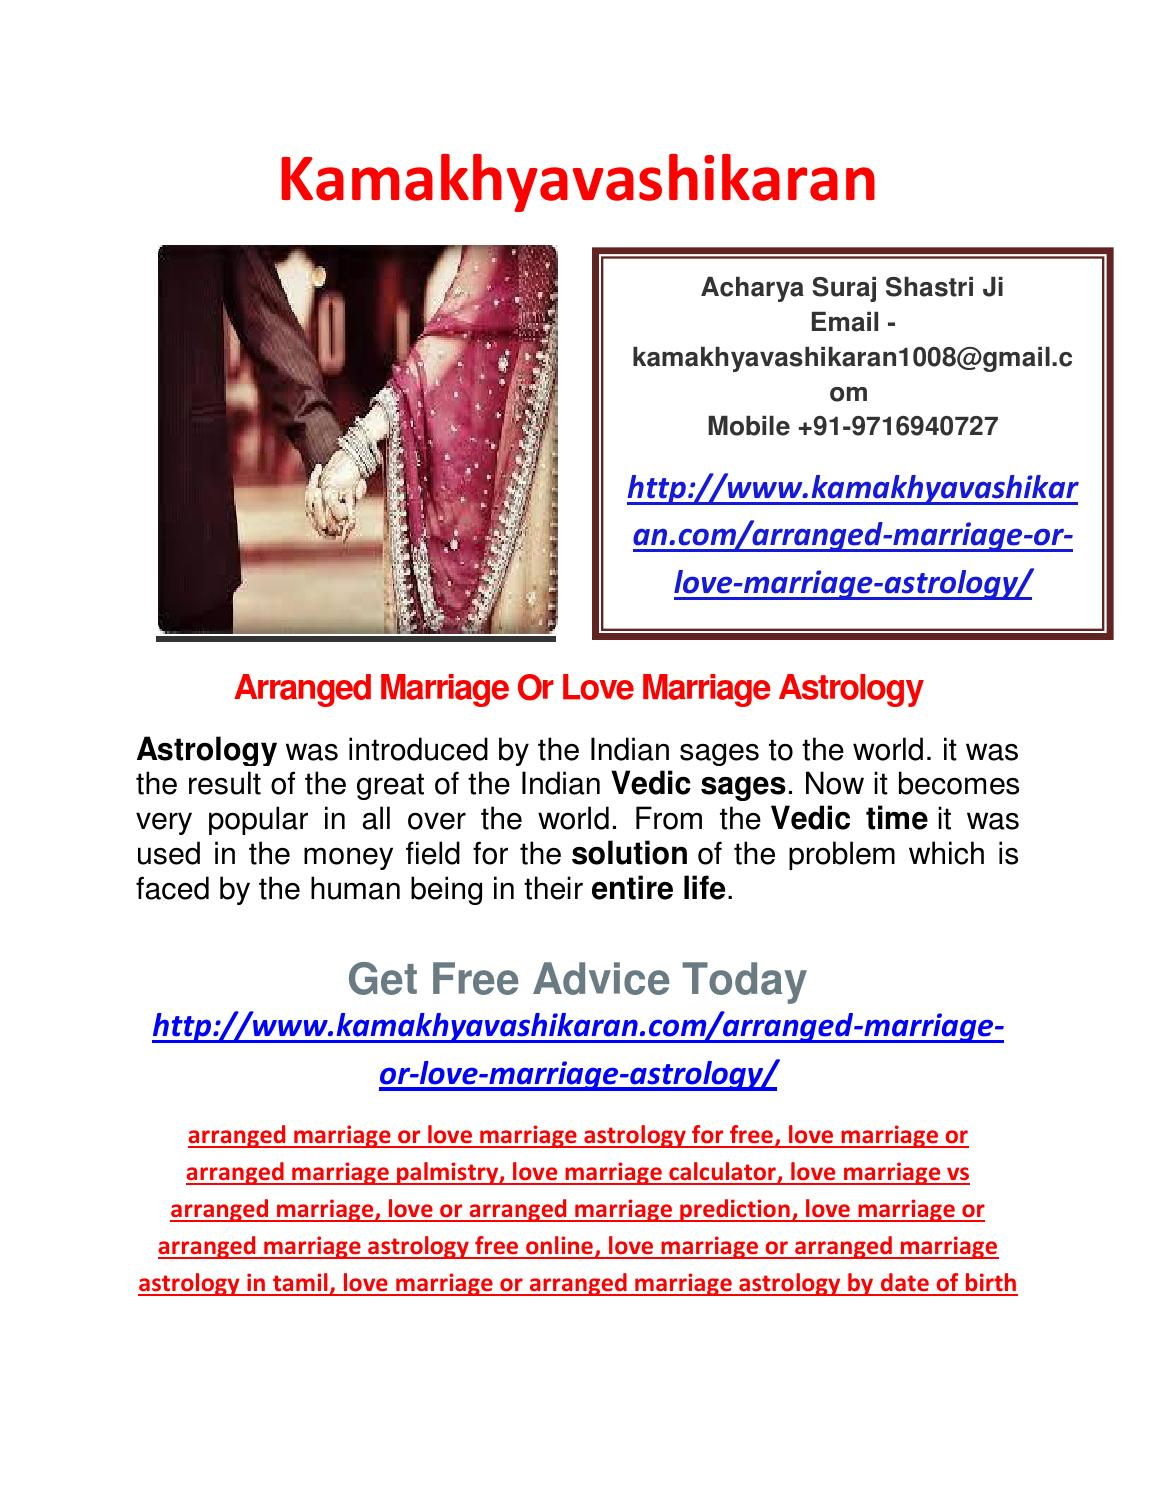 Arranged marriage or love marriage astrology by shweeta - issuu